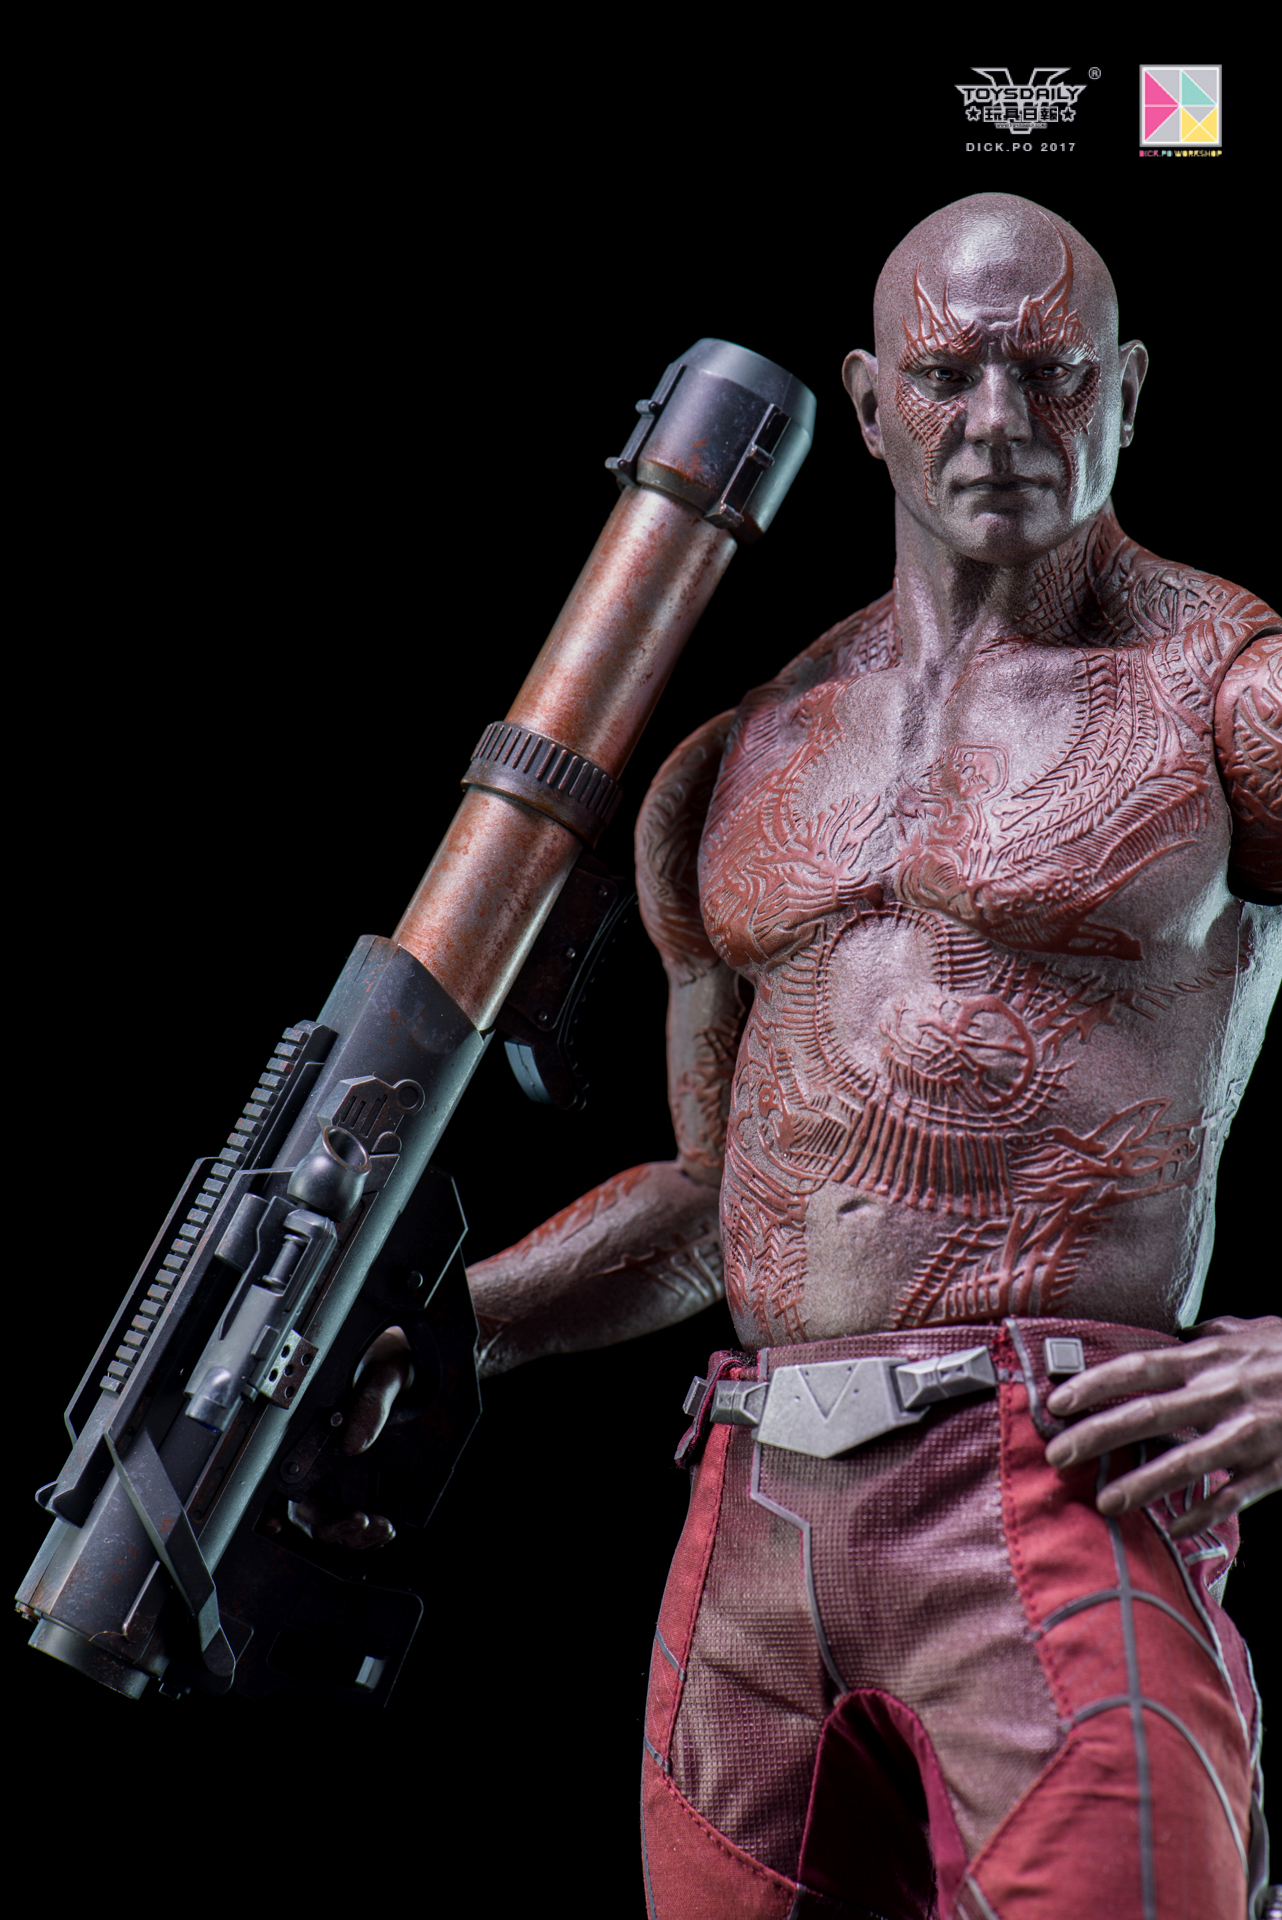 toysdaily_dick.po_Hottoys_DARX-46.jpg